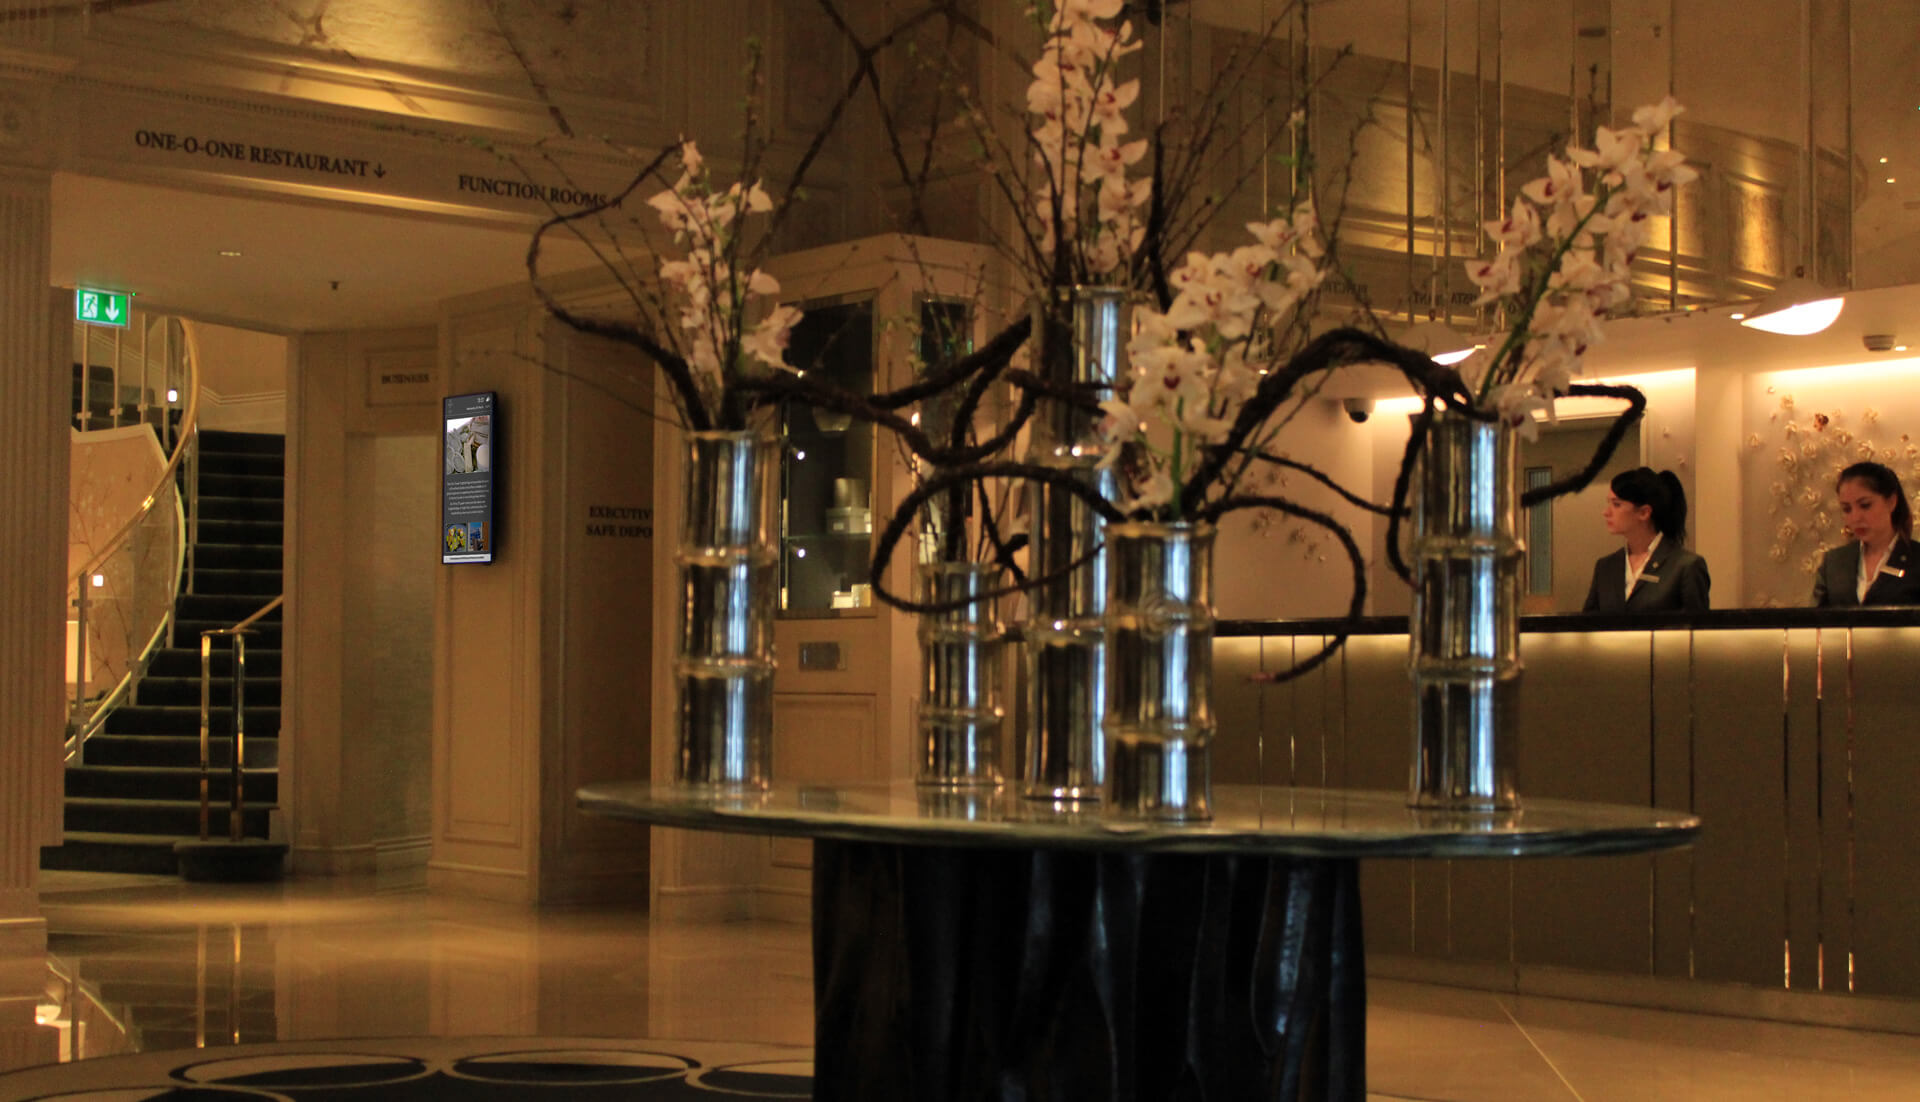 Eclipse Digital Media Digital Signage Project The Park Hotel Knightsbridge 19